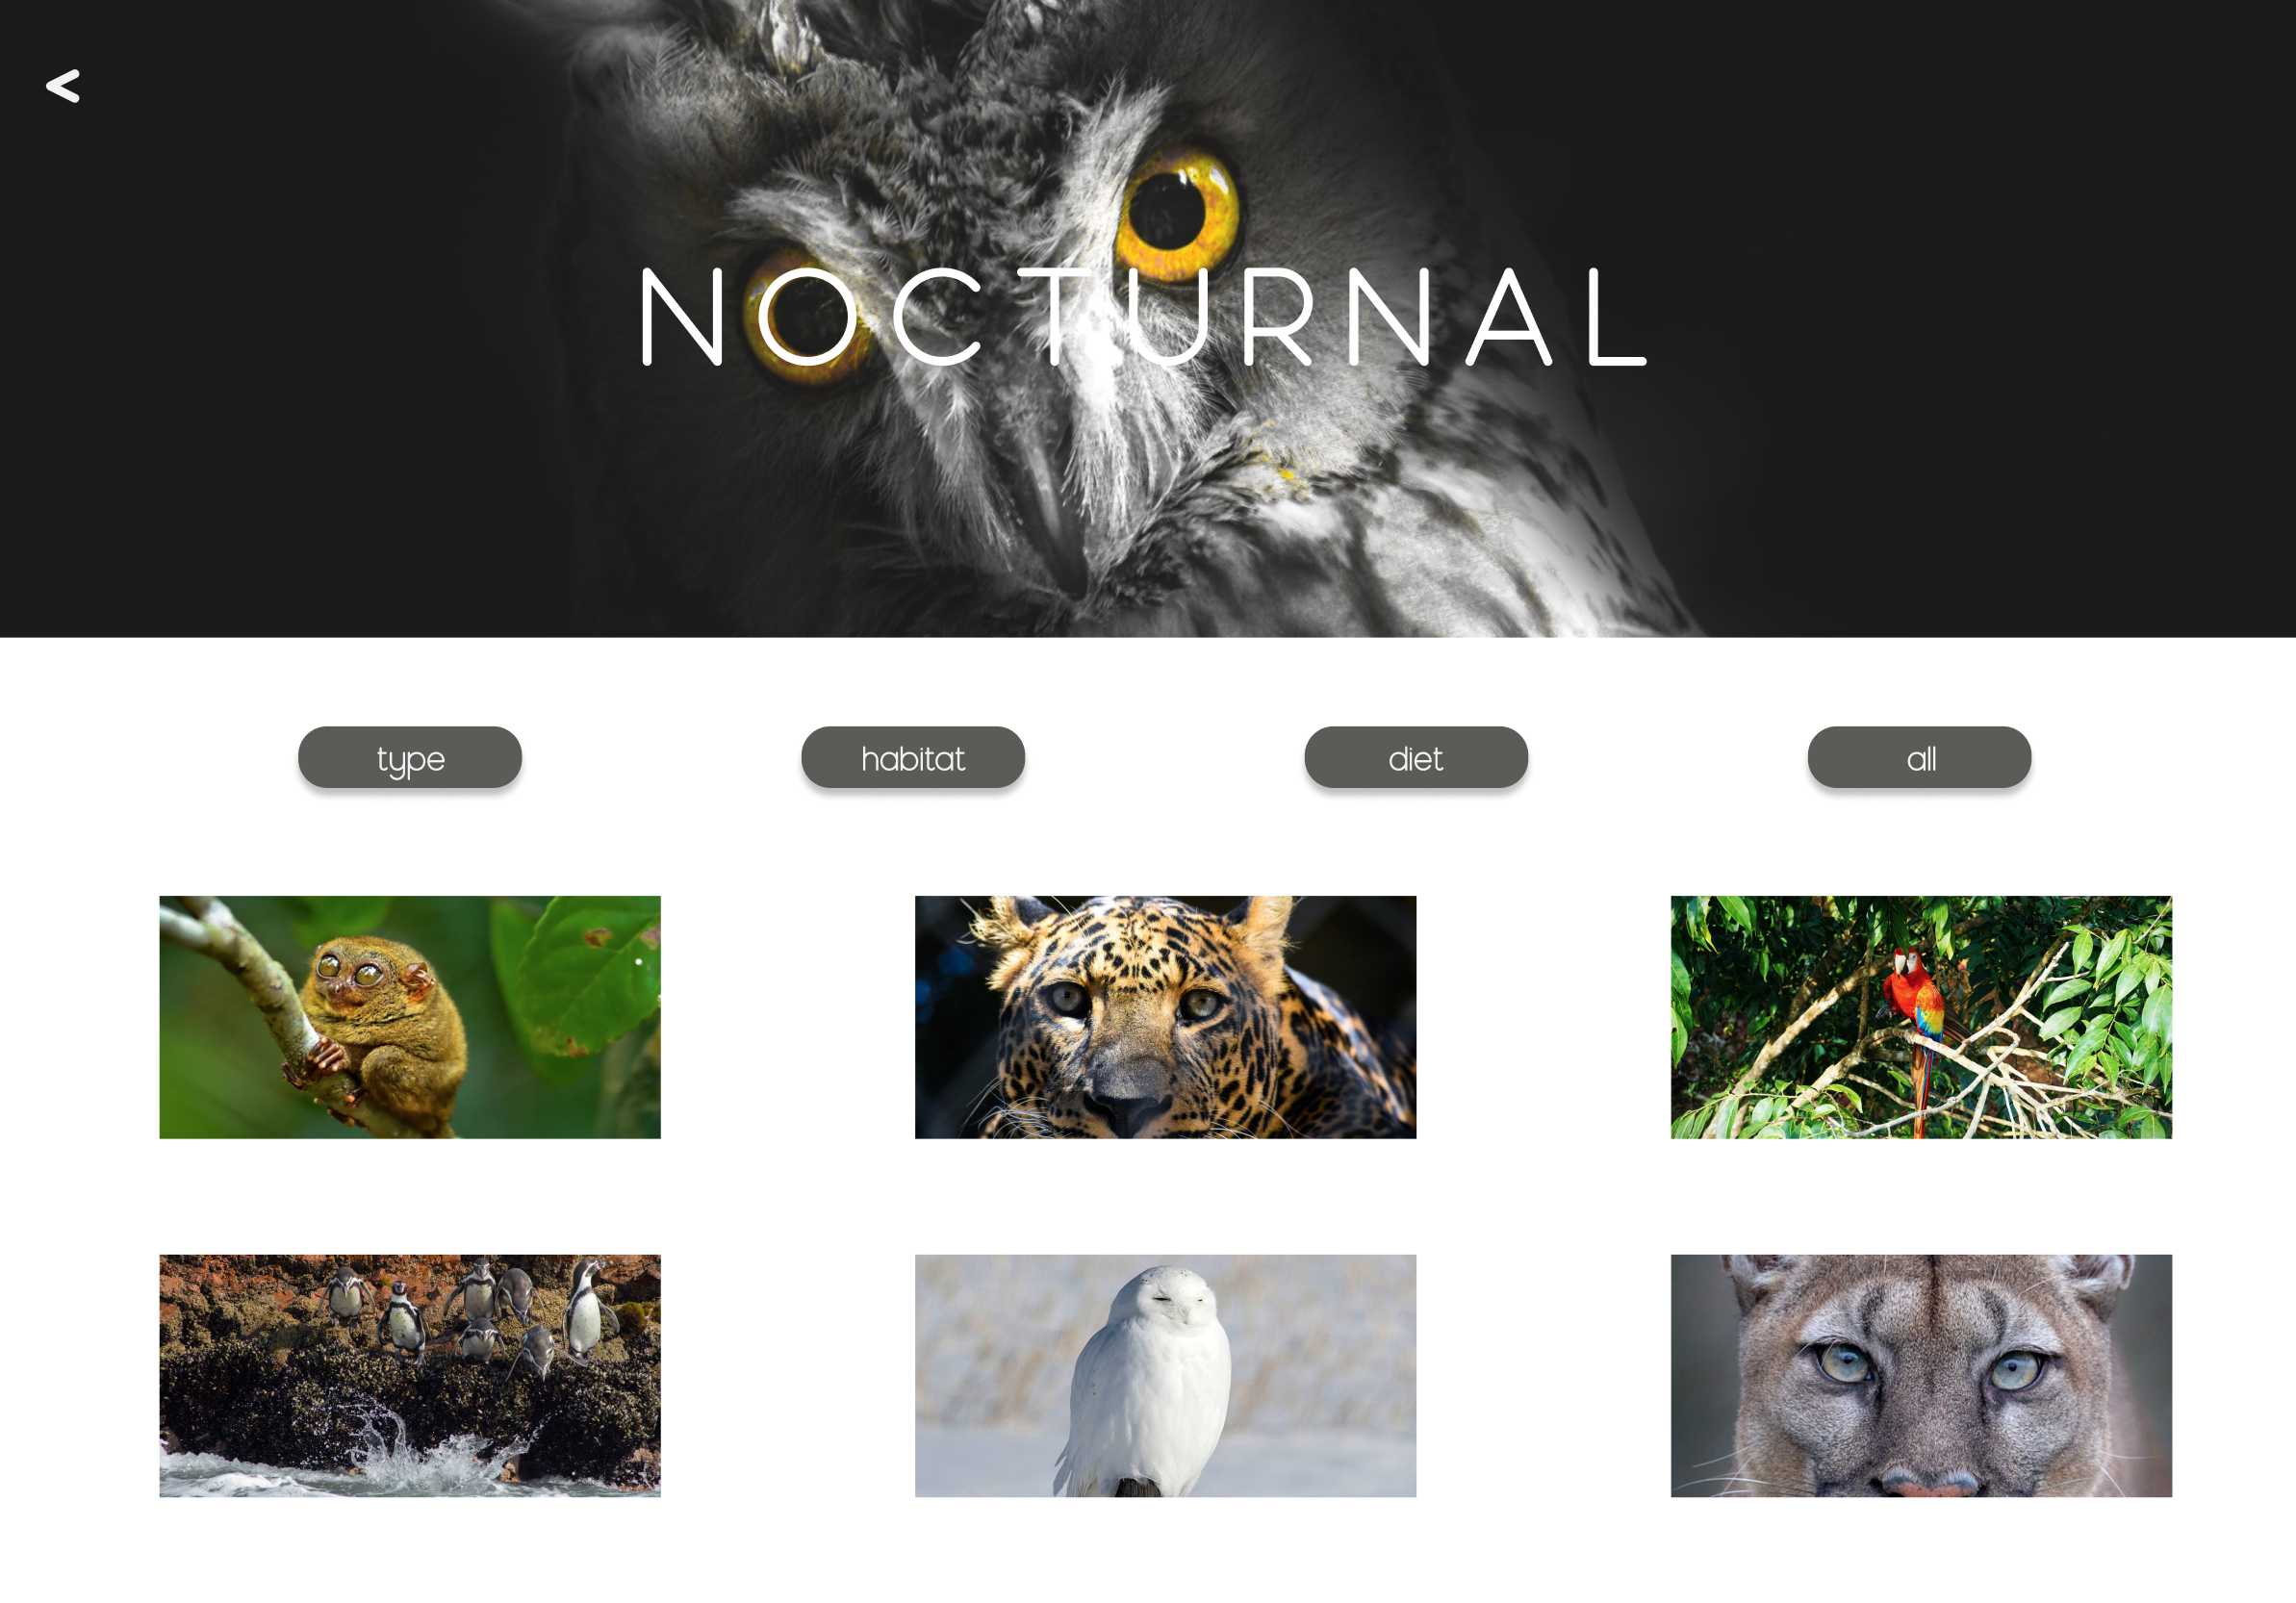 TABLET SCREEN FOR NOCTURNAL CATEGORY